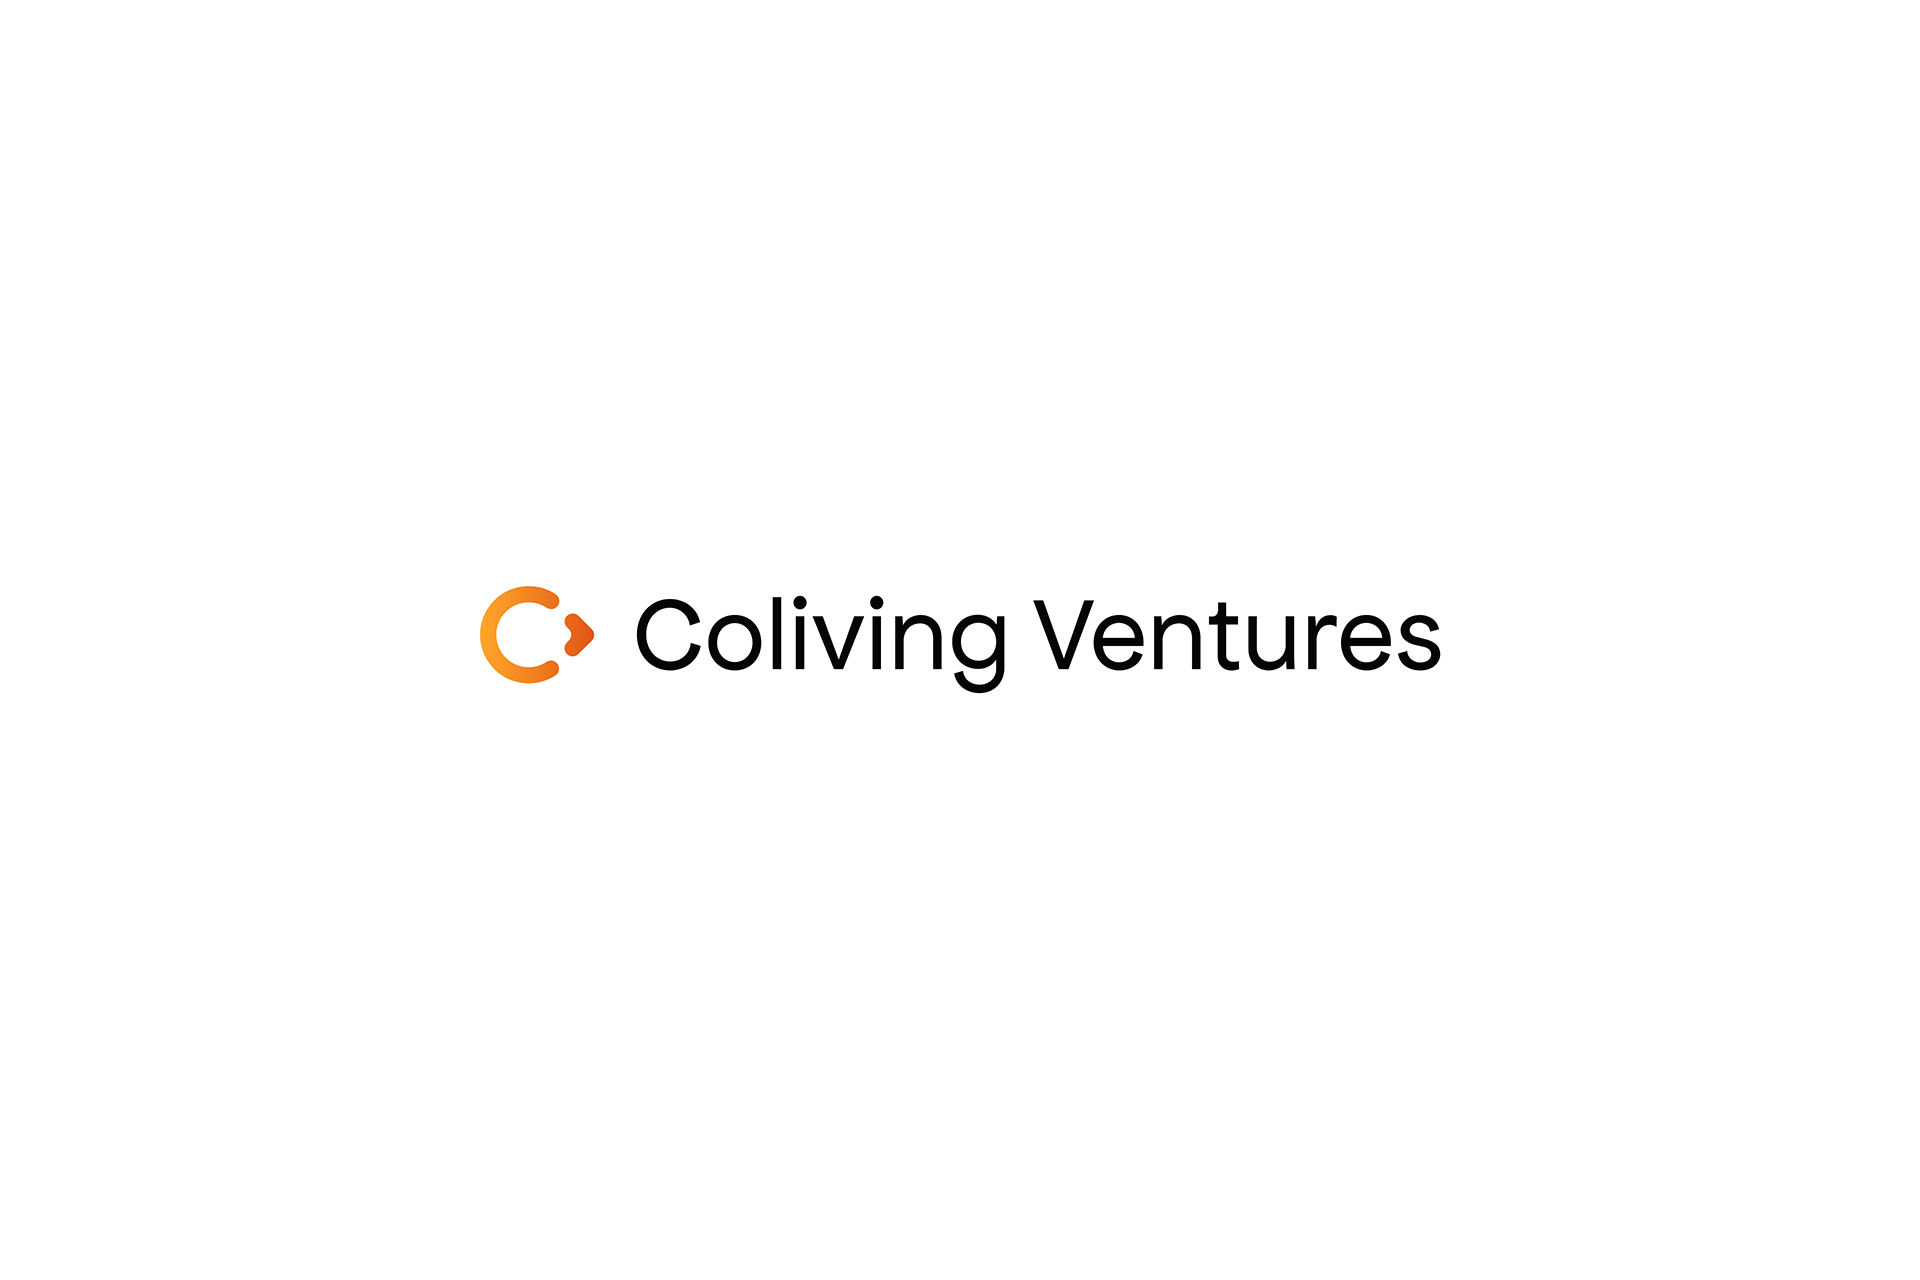 Coliving Ventures black logotype with white background by SPX Studio